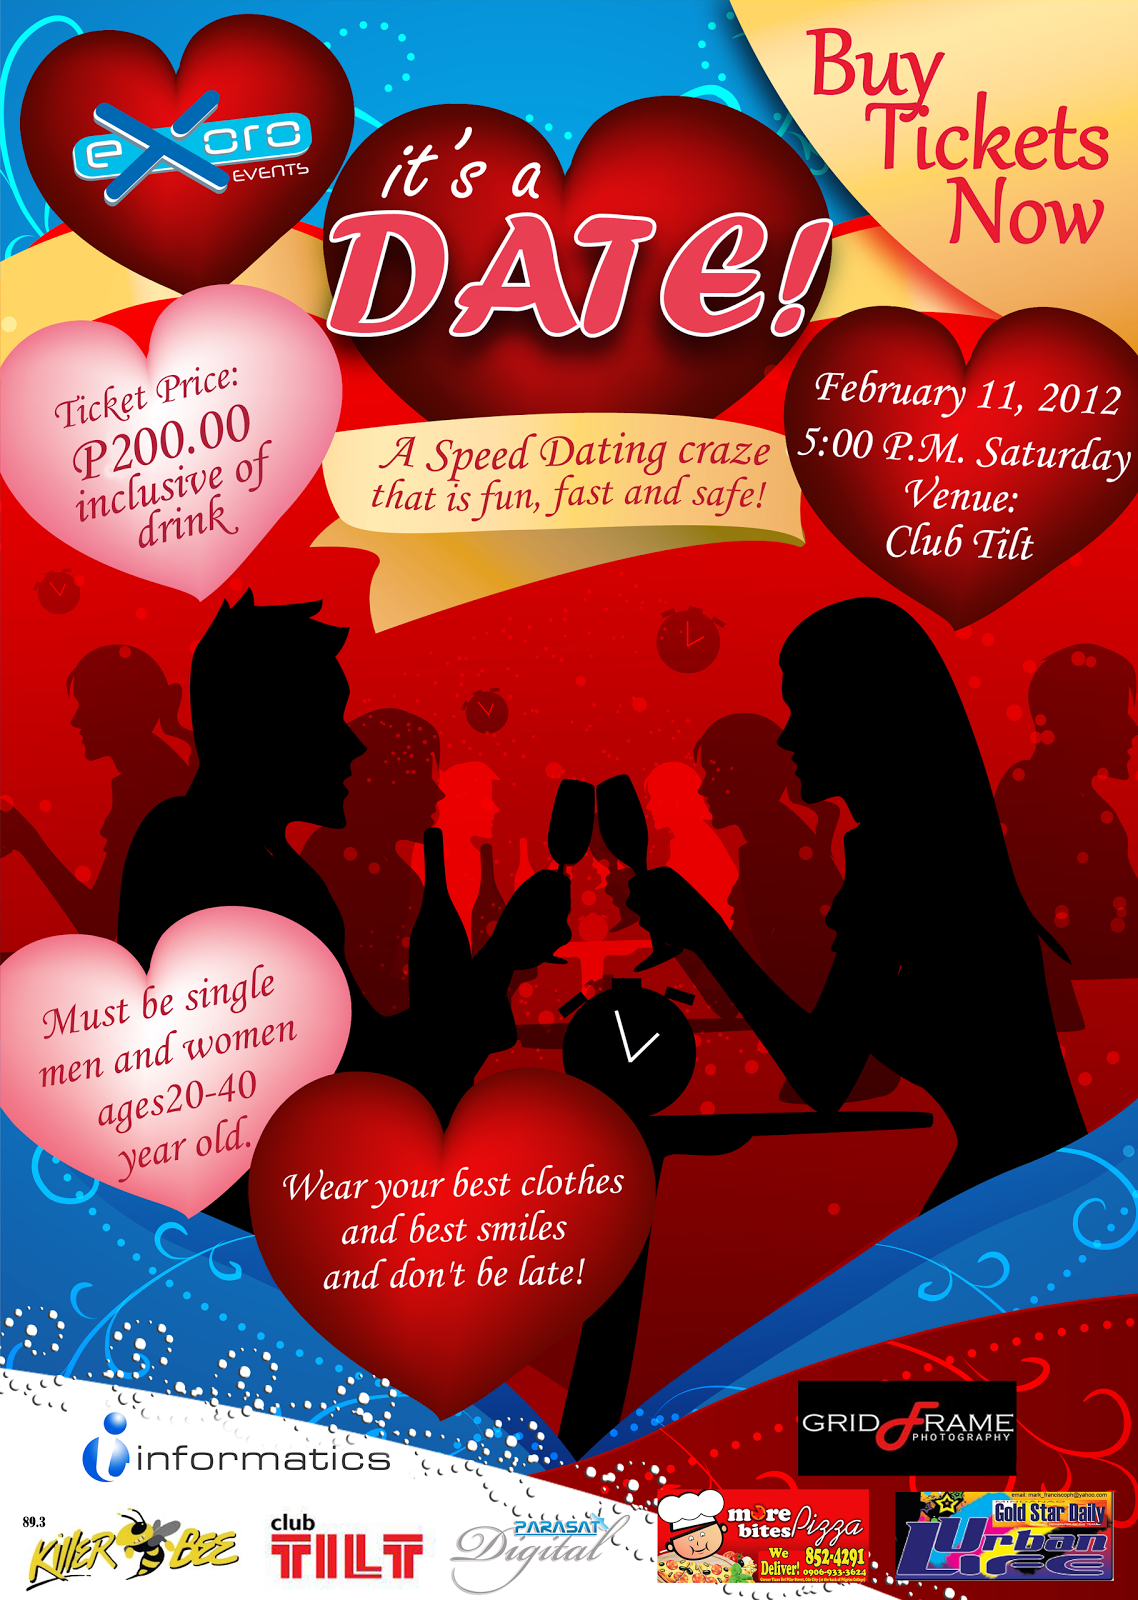 What is speed dating event